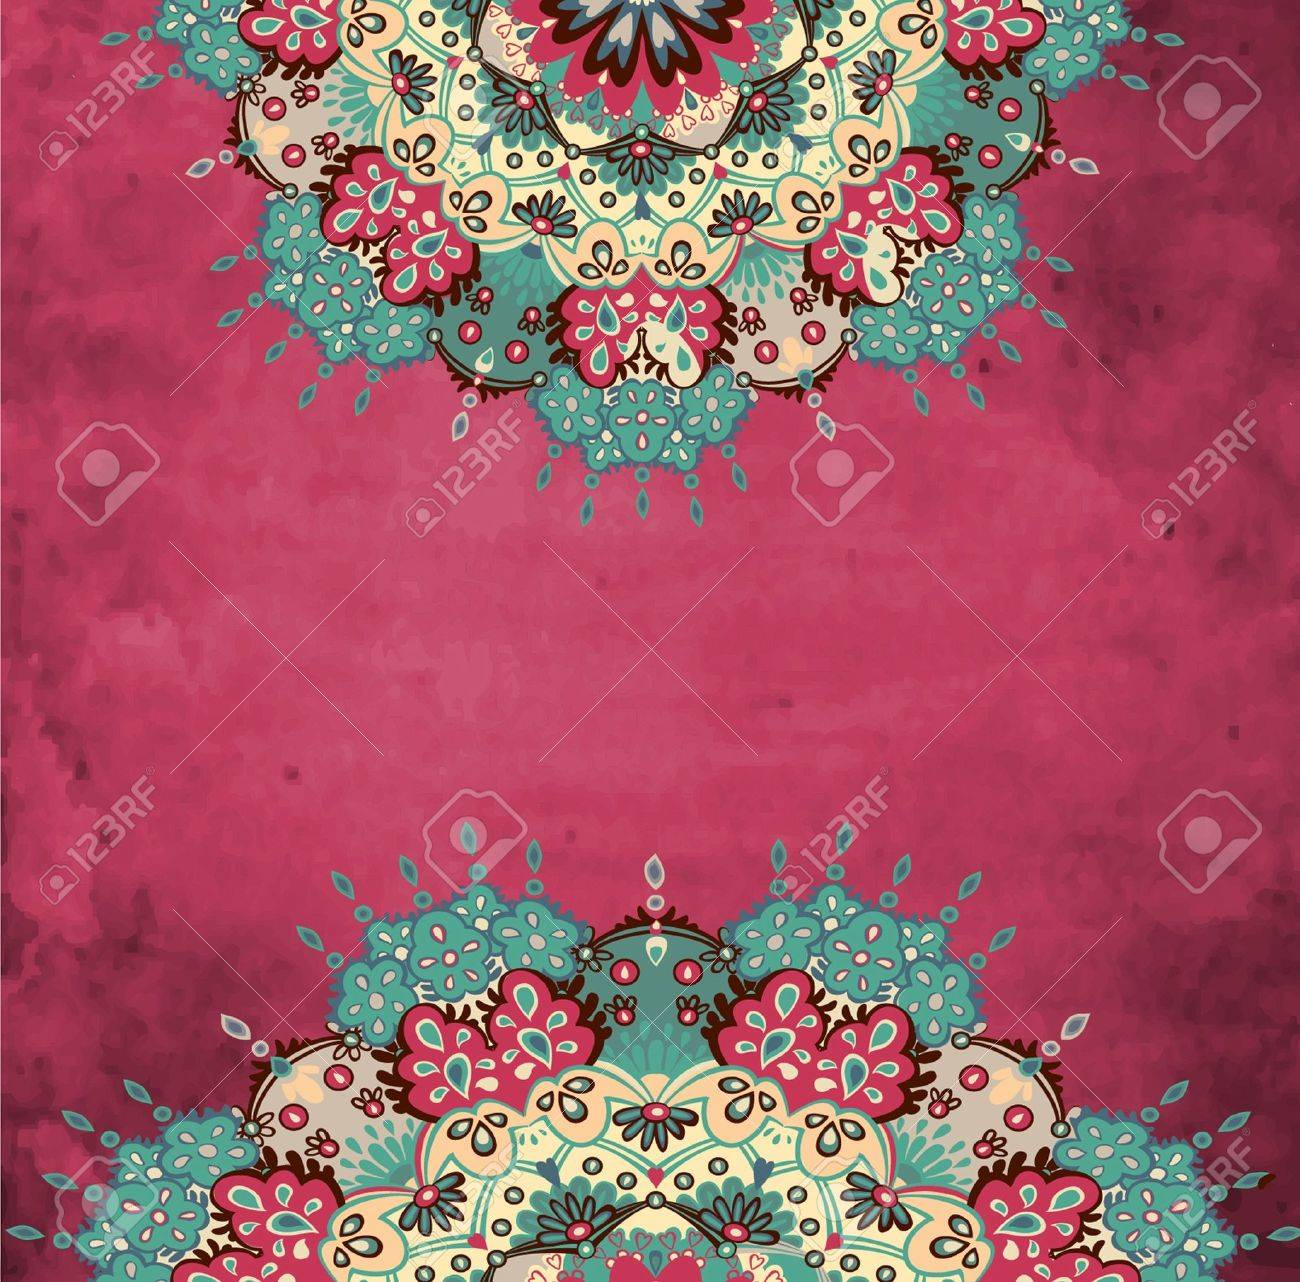 Colorful decorative round grunge background Stock Vector - 16553604